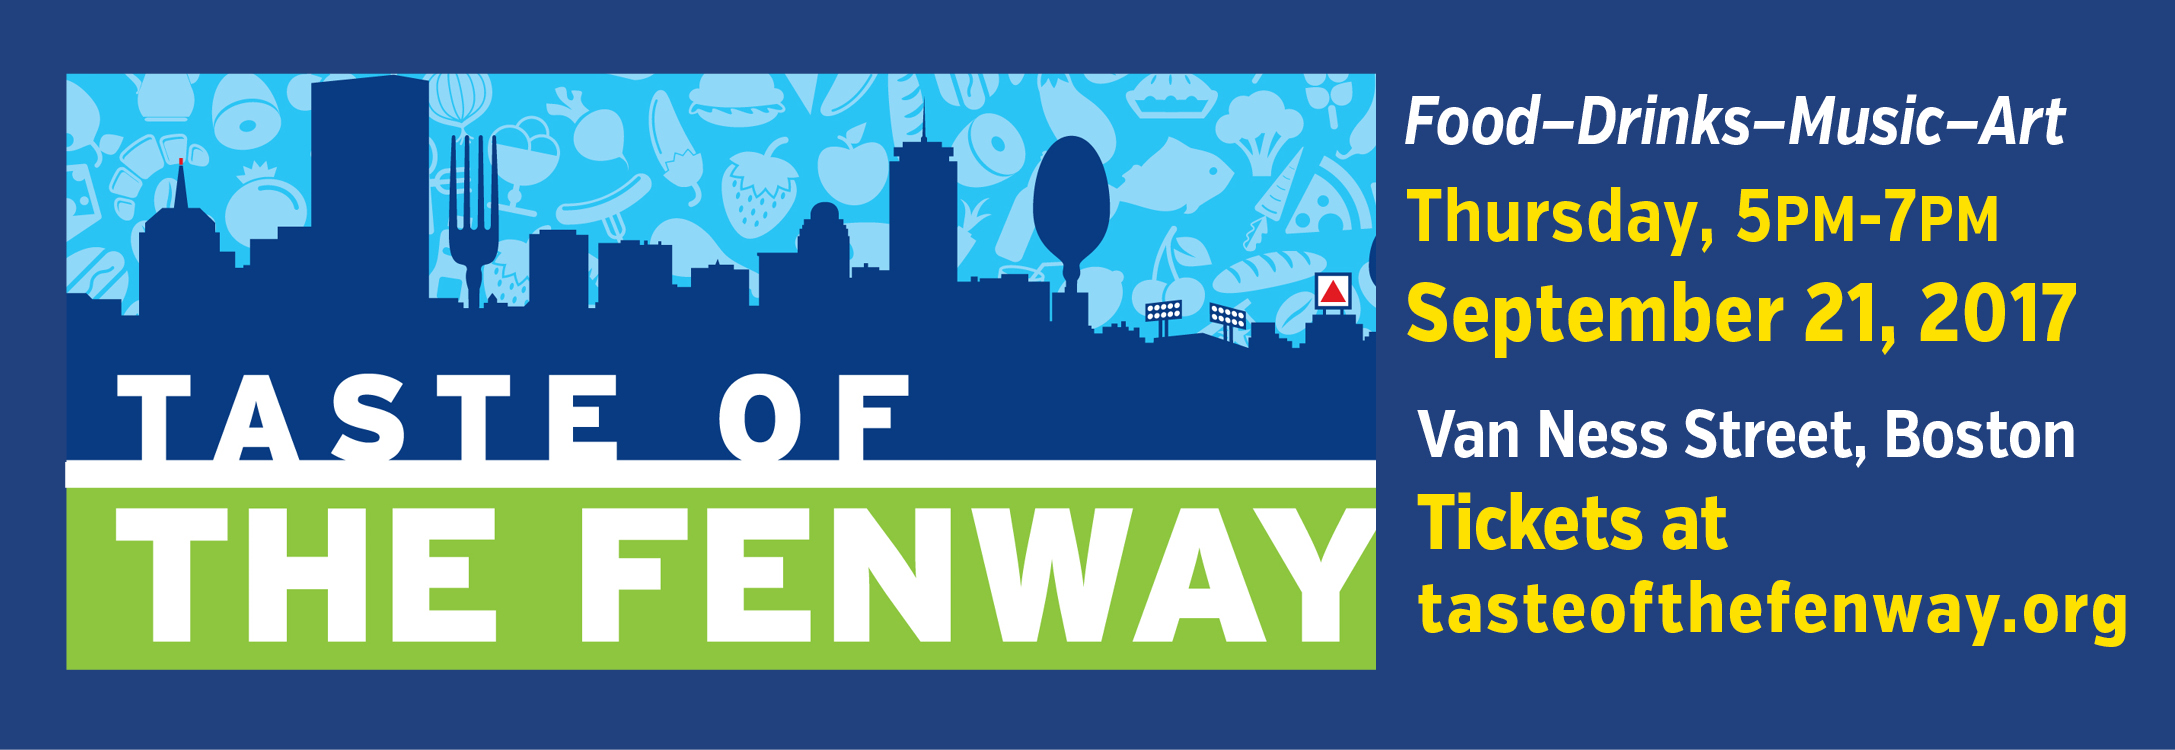 Please invite your family friends and business associates to taste of the fenway which will be held on thursday september 21 2017 from 5pm to 7pm at van